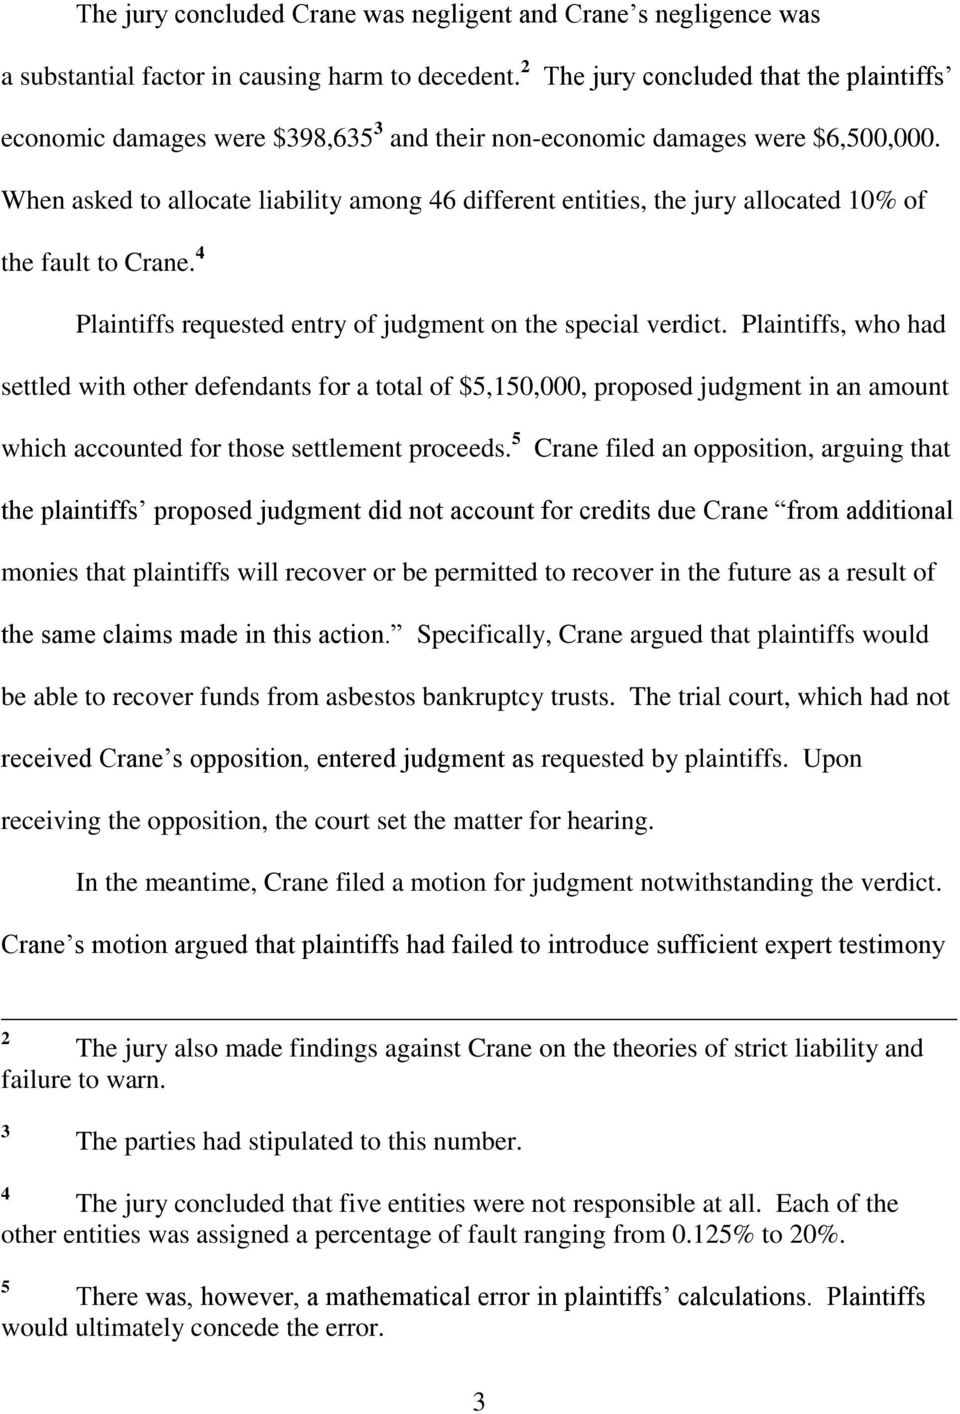 When asked to allocate liability among 46 different entities, the jury allocated 10% of the fault to Crane. 4 Plaintiffs requested entry of judgment on the special verdict.